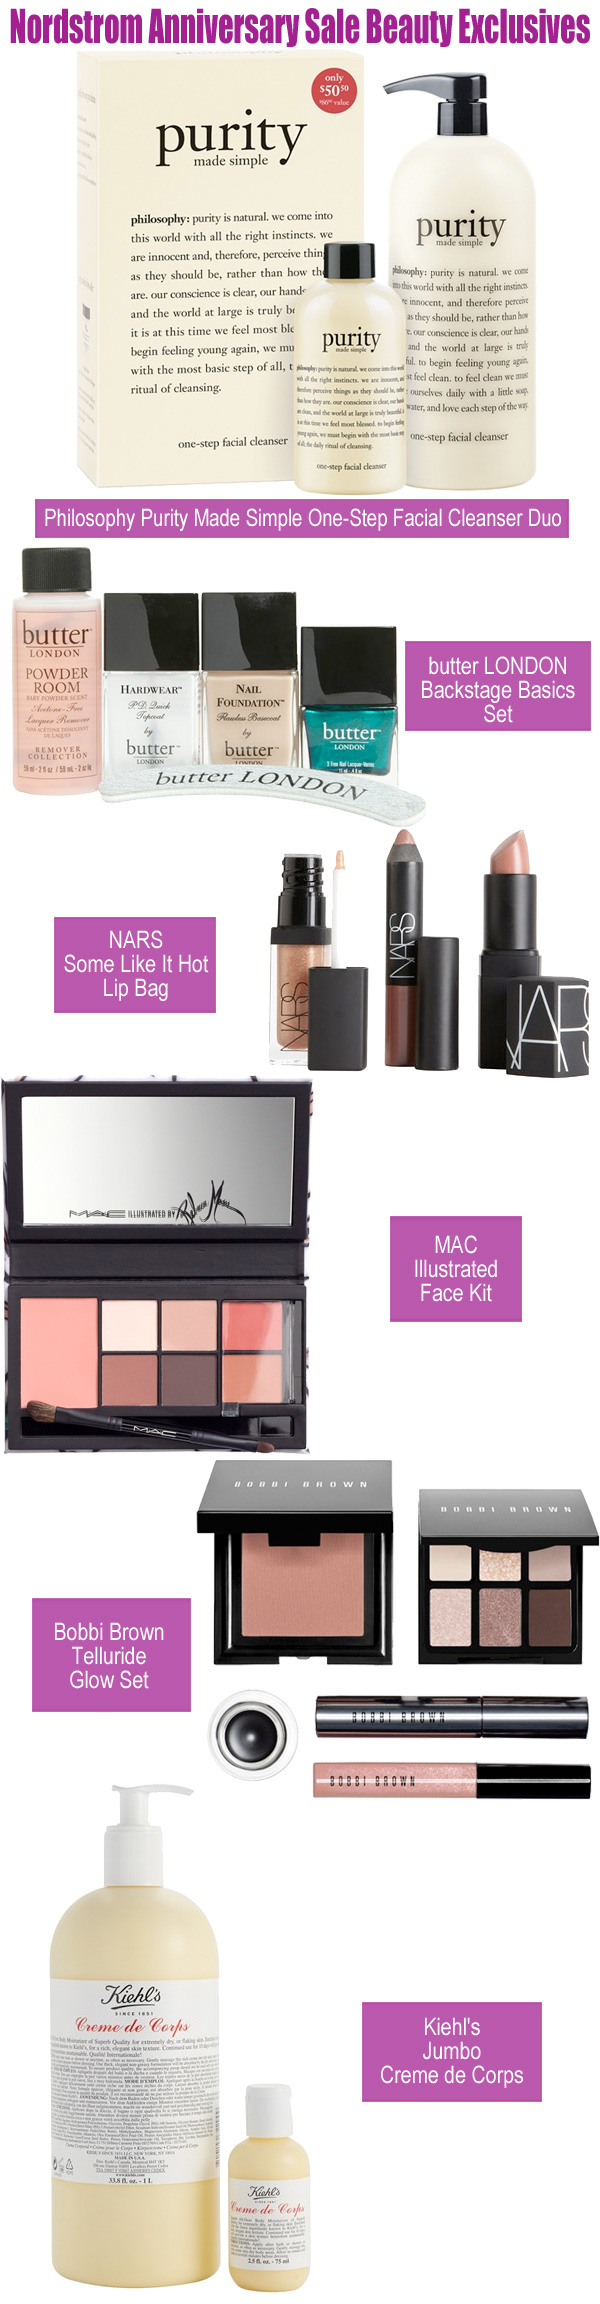 Nordstrom Anniversary Sale Beauty Exclusives 2013